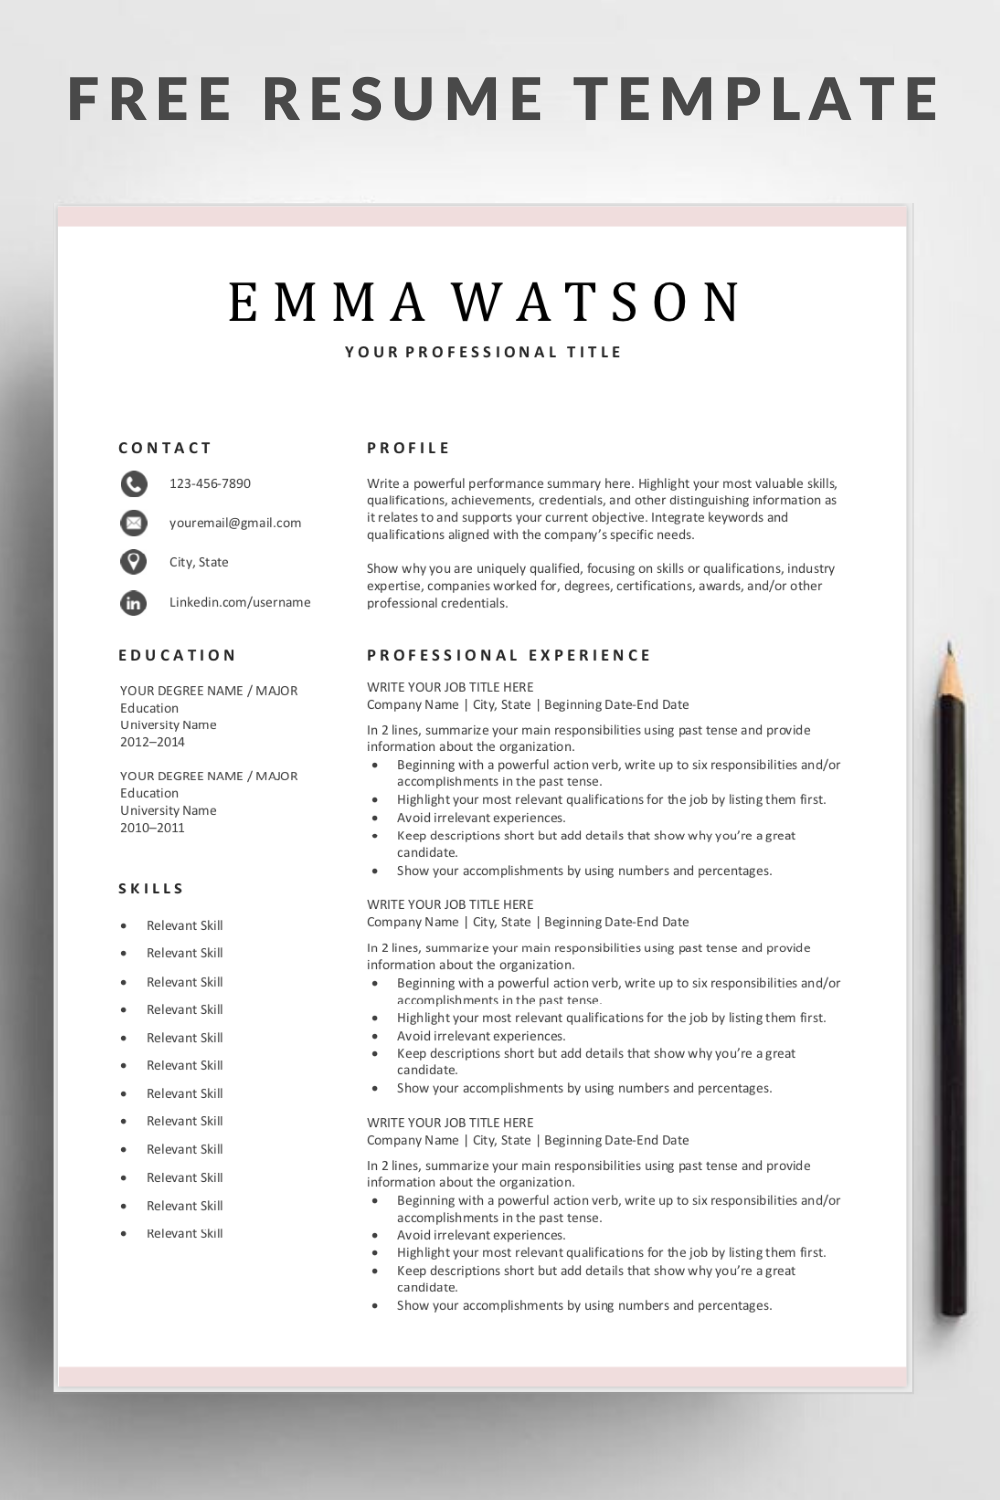 Simple Resume Template Download For Free In 2020 Simple Resume